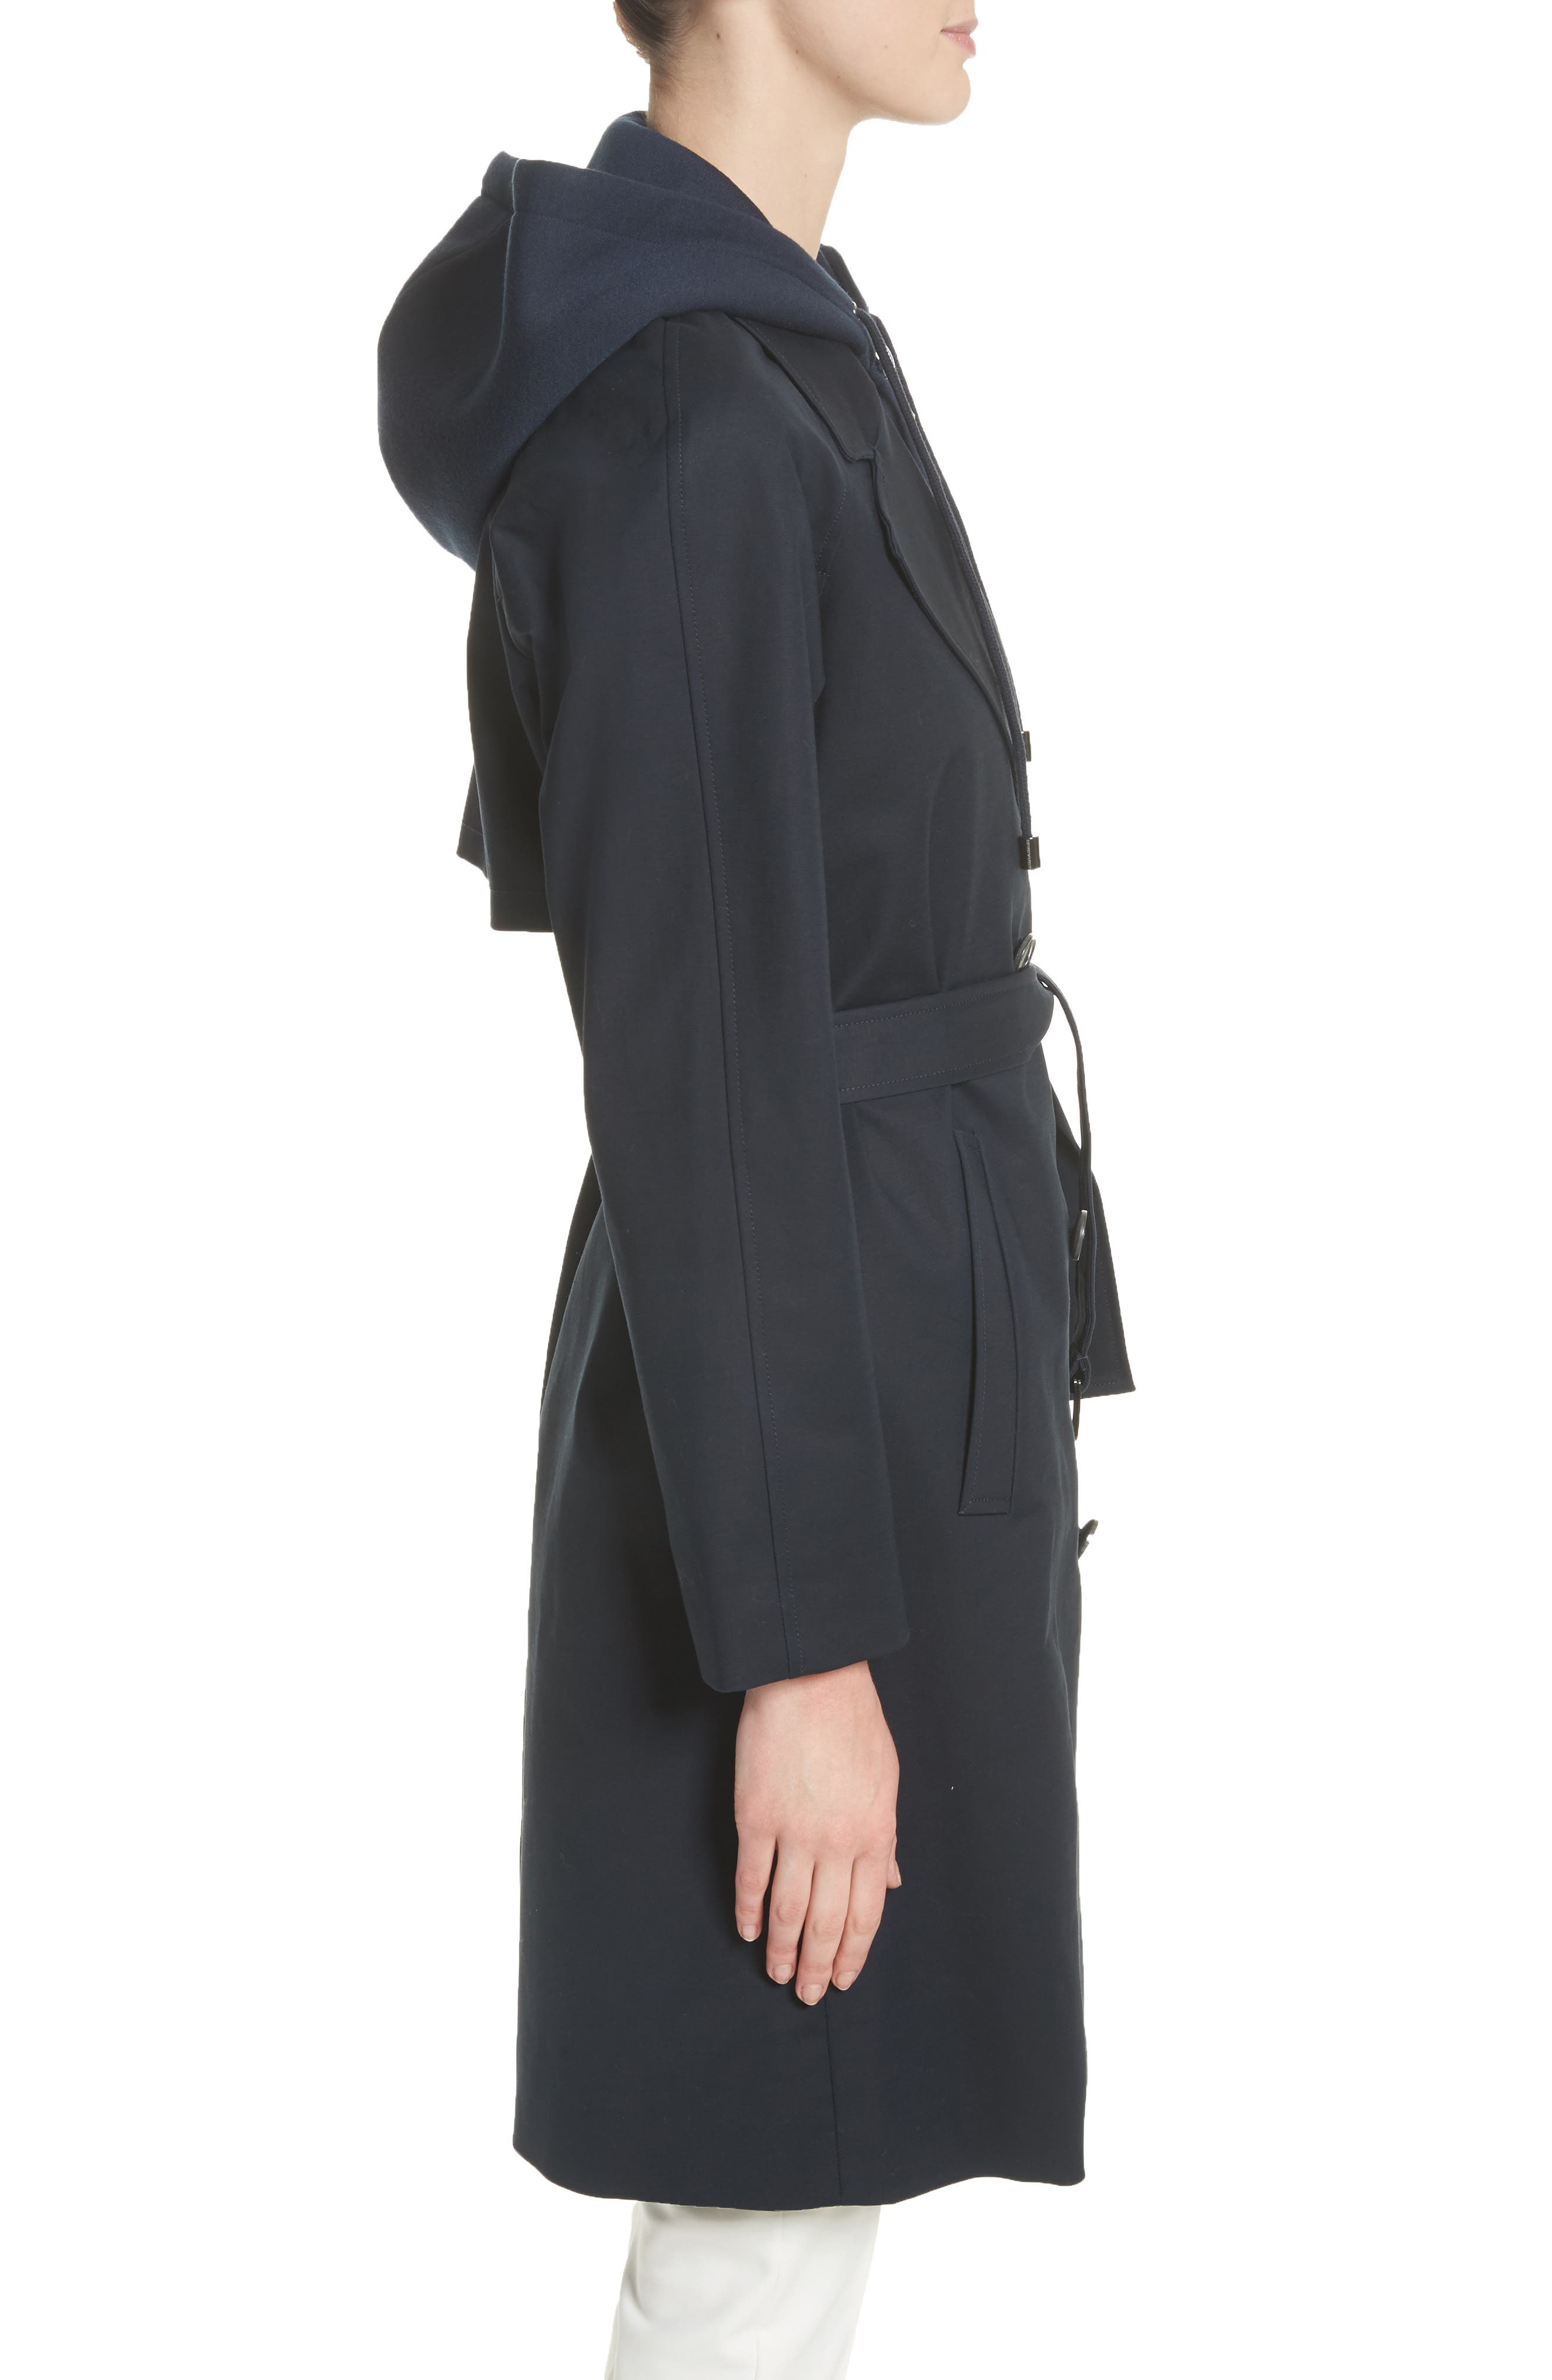 Double Breasted Cotton Blend Trench Coat with Removable Hoodie Inset,                             Alternate thumbnail 4, color,                             414